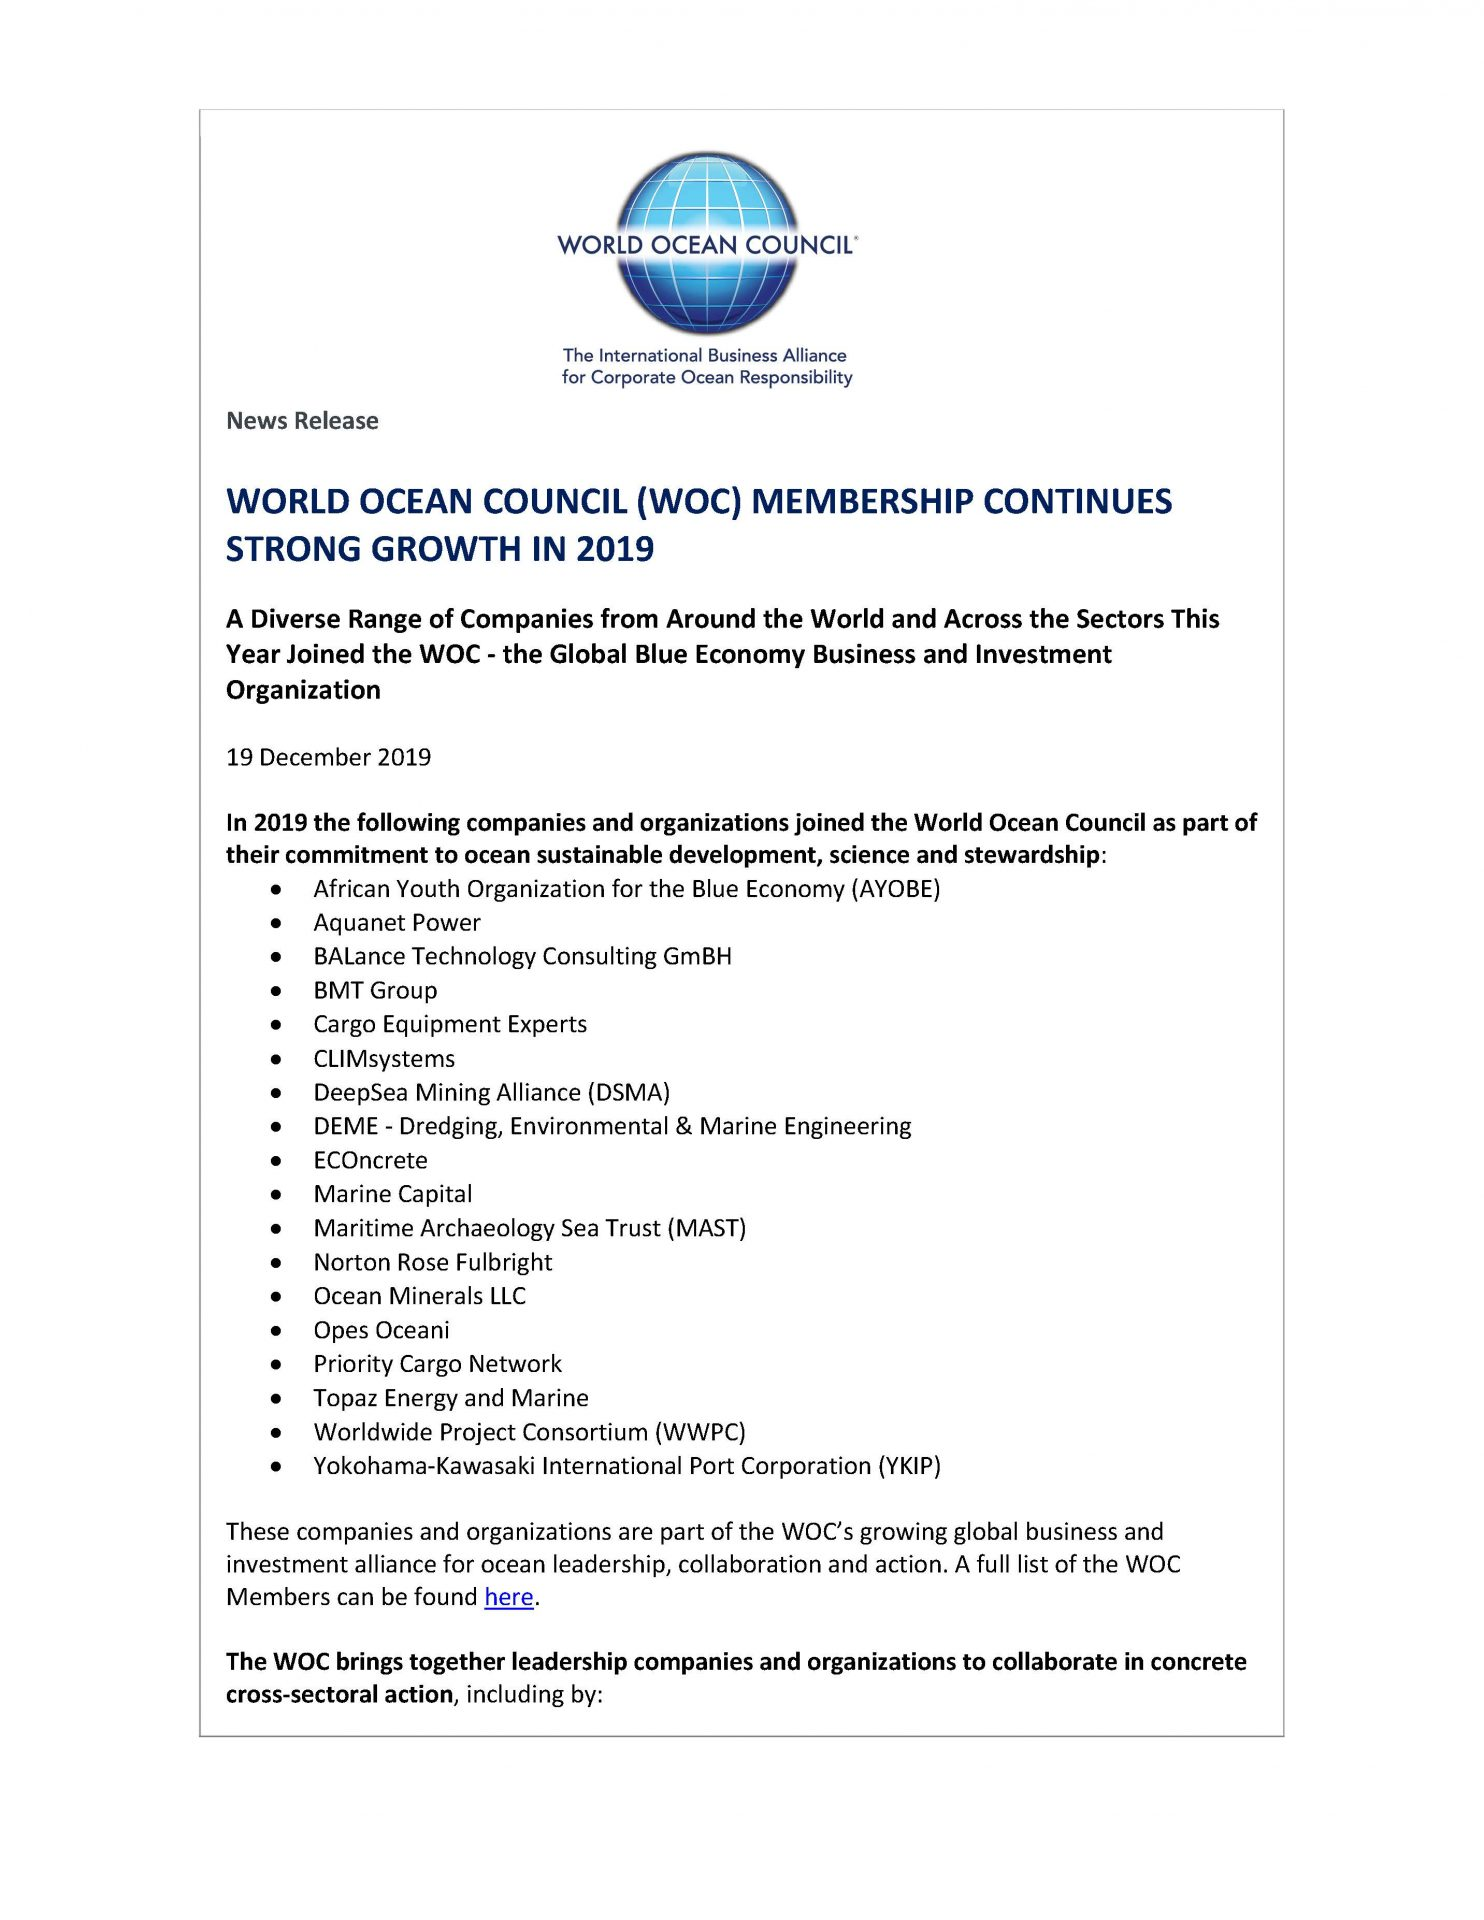 World Ocean Council (WOC) Membership Continues Strong Growth in 2019 - 19 December 2019